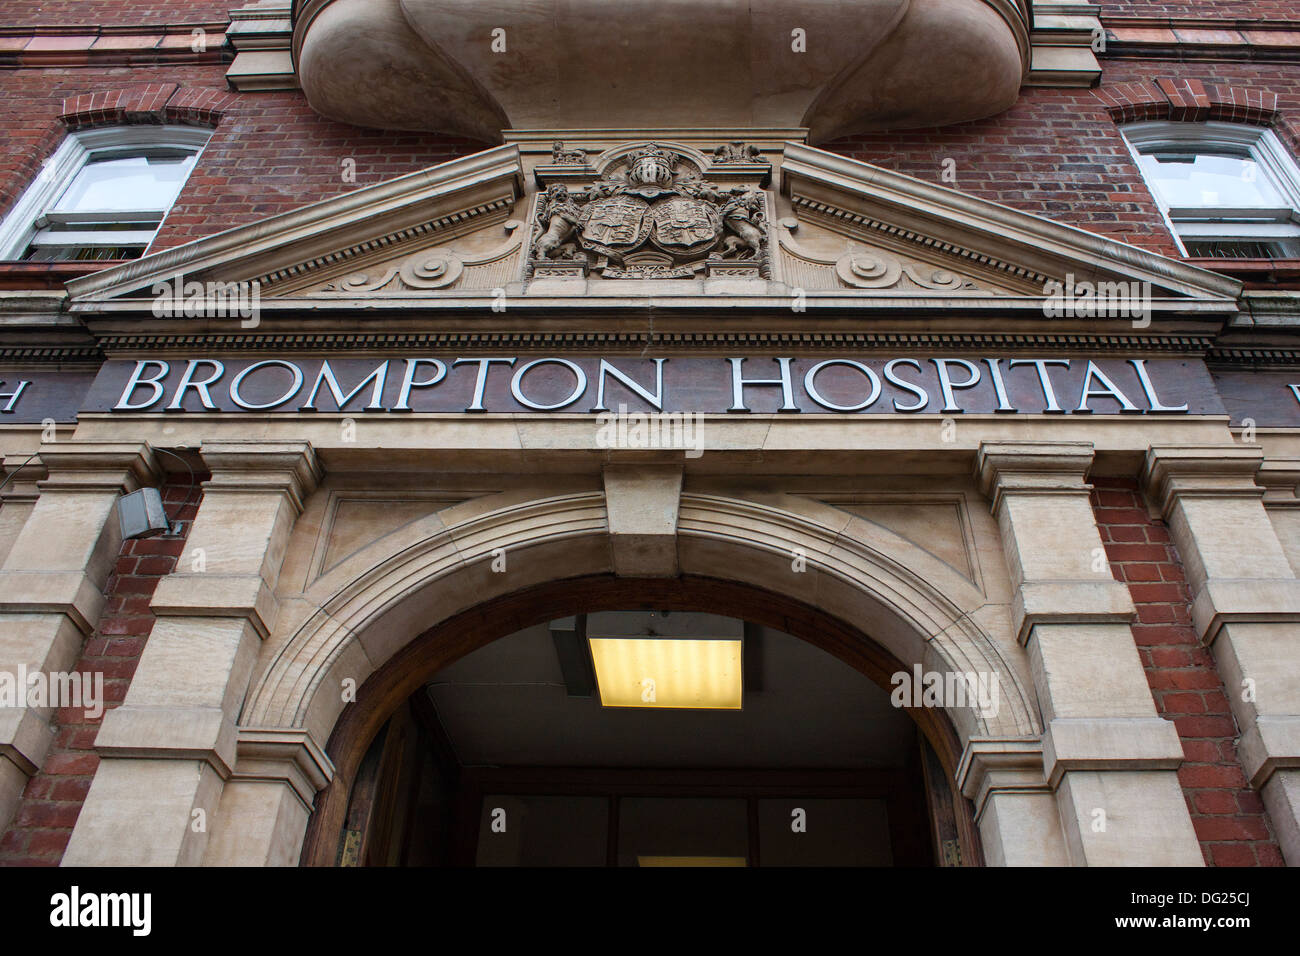 Brompton Hospital, entrance and sign - Stock Image